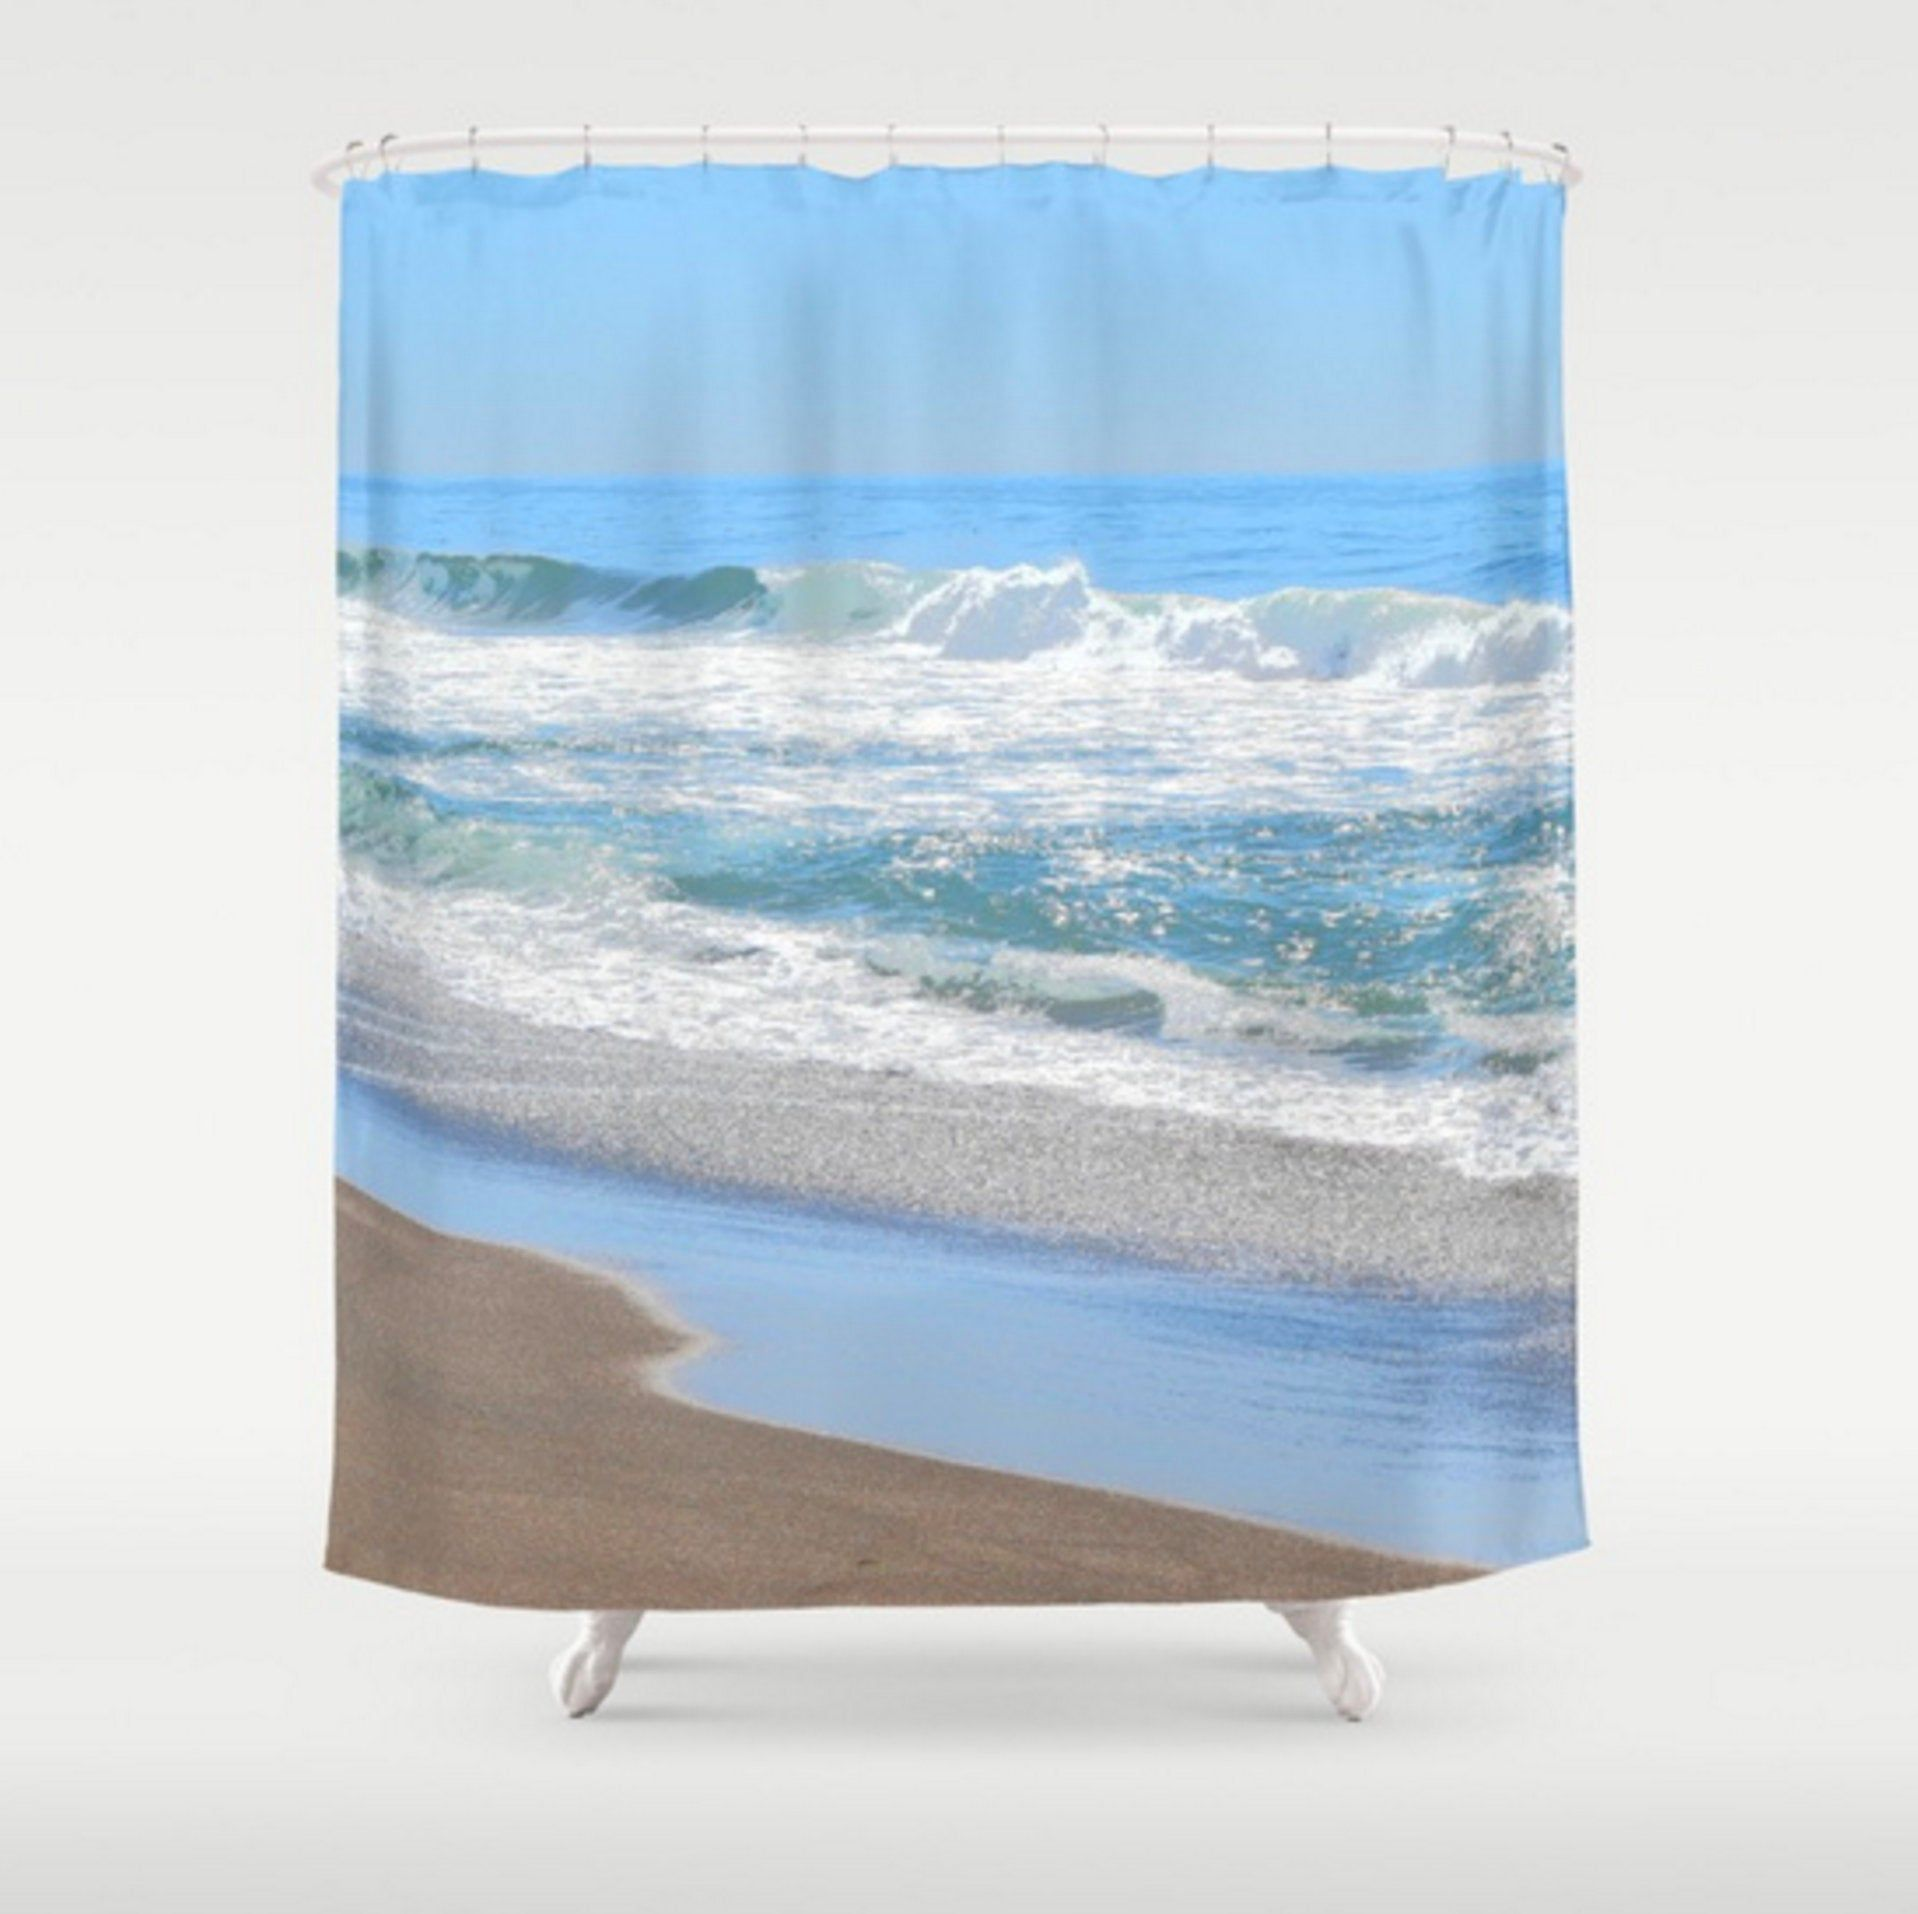 Frothy White Ocean Waves Shower Curtain Baby Blue Shower Curtain